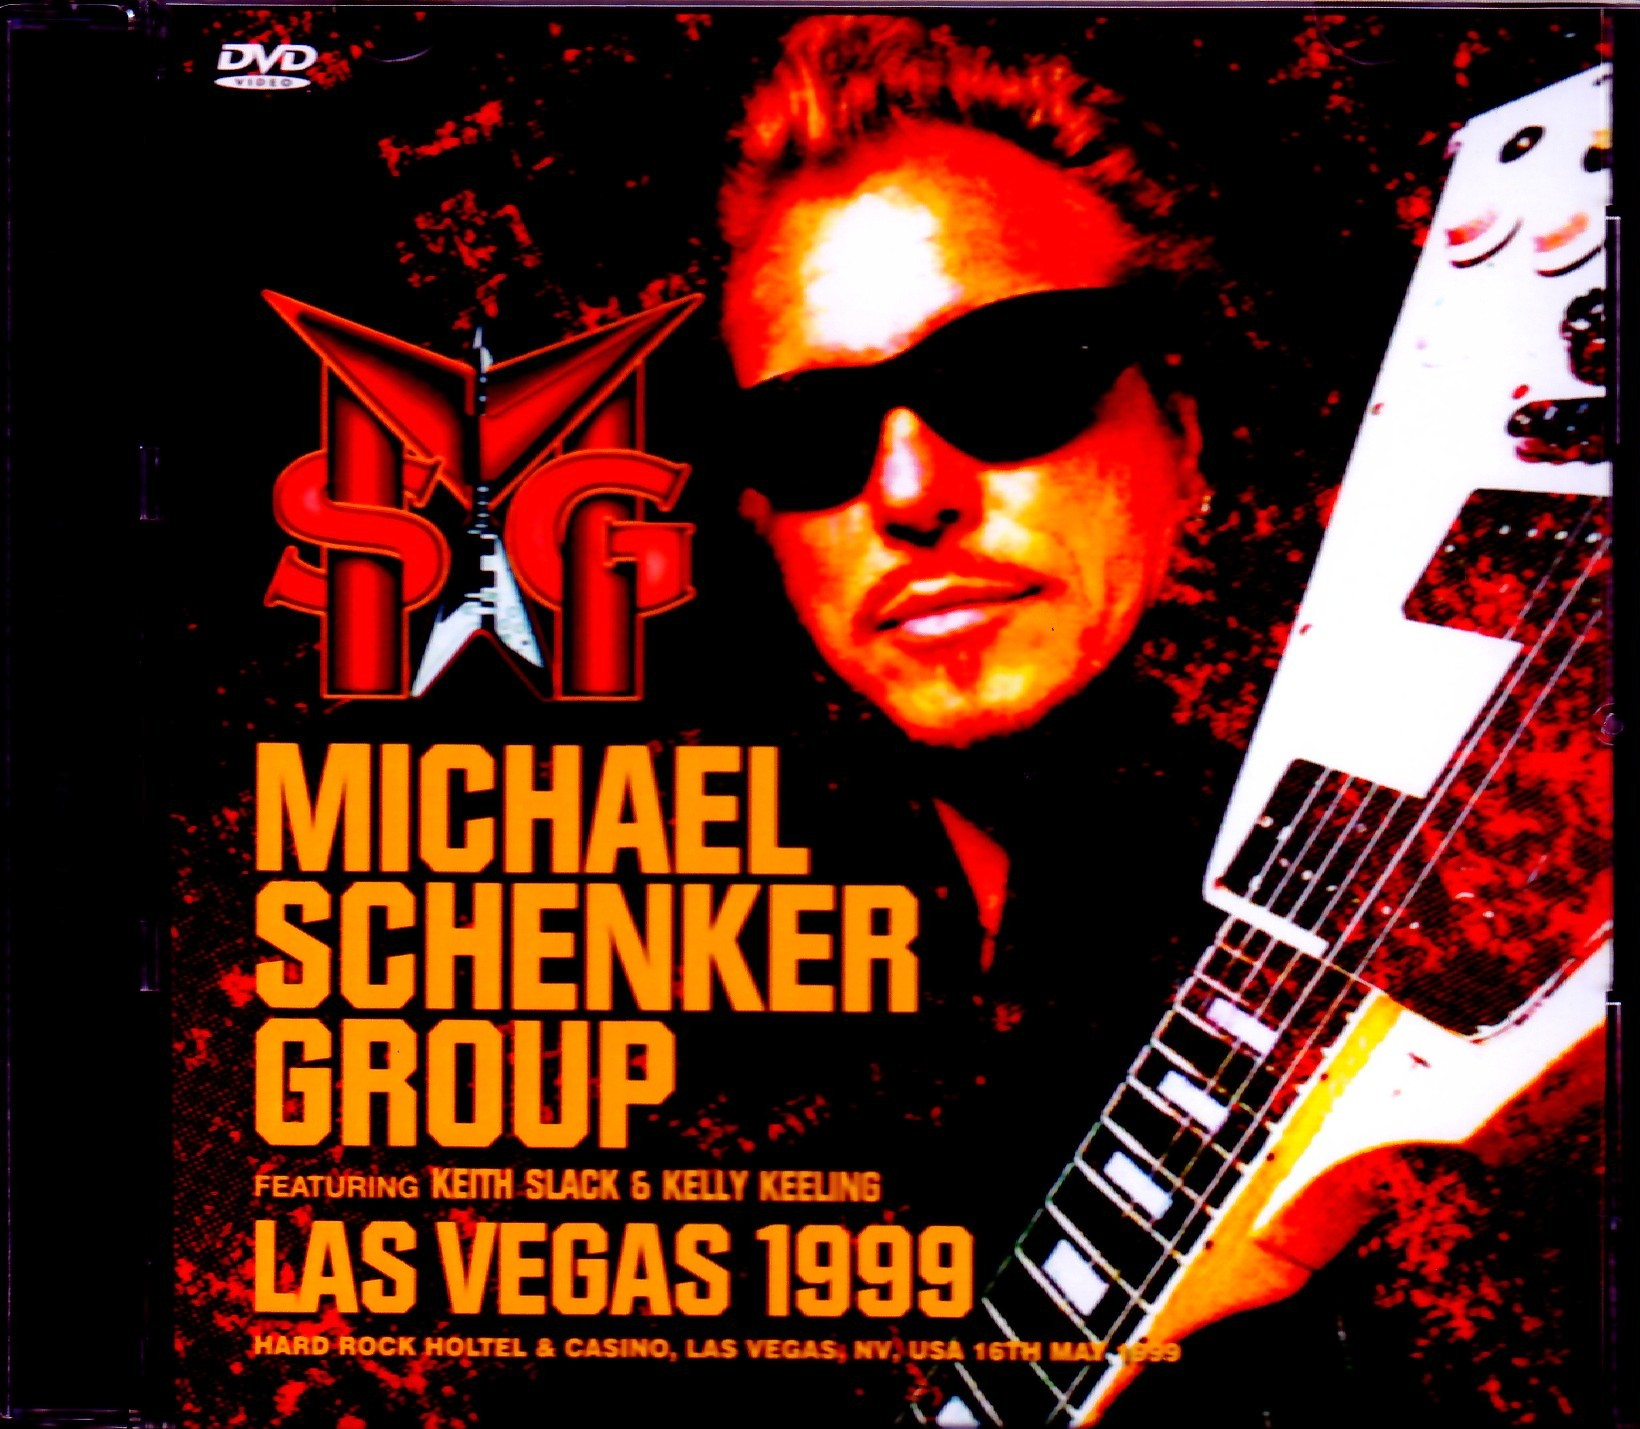 Michael Schenker Group マイケル・シェンカー/NV,USA 1999